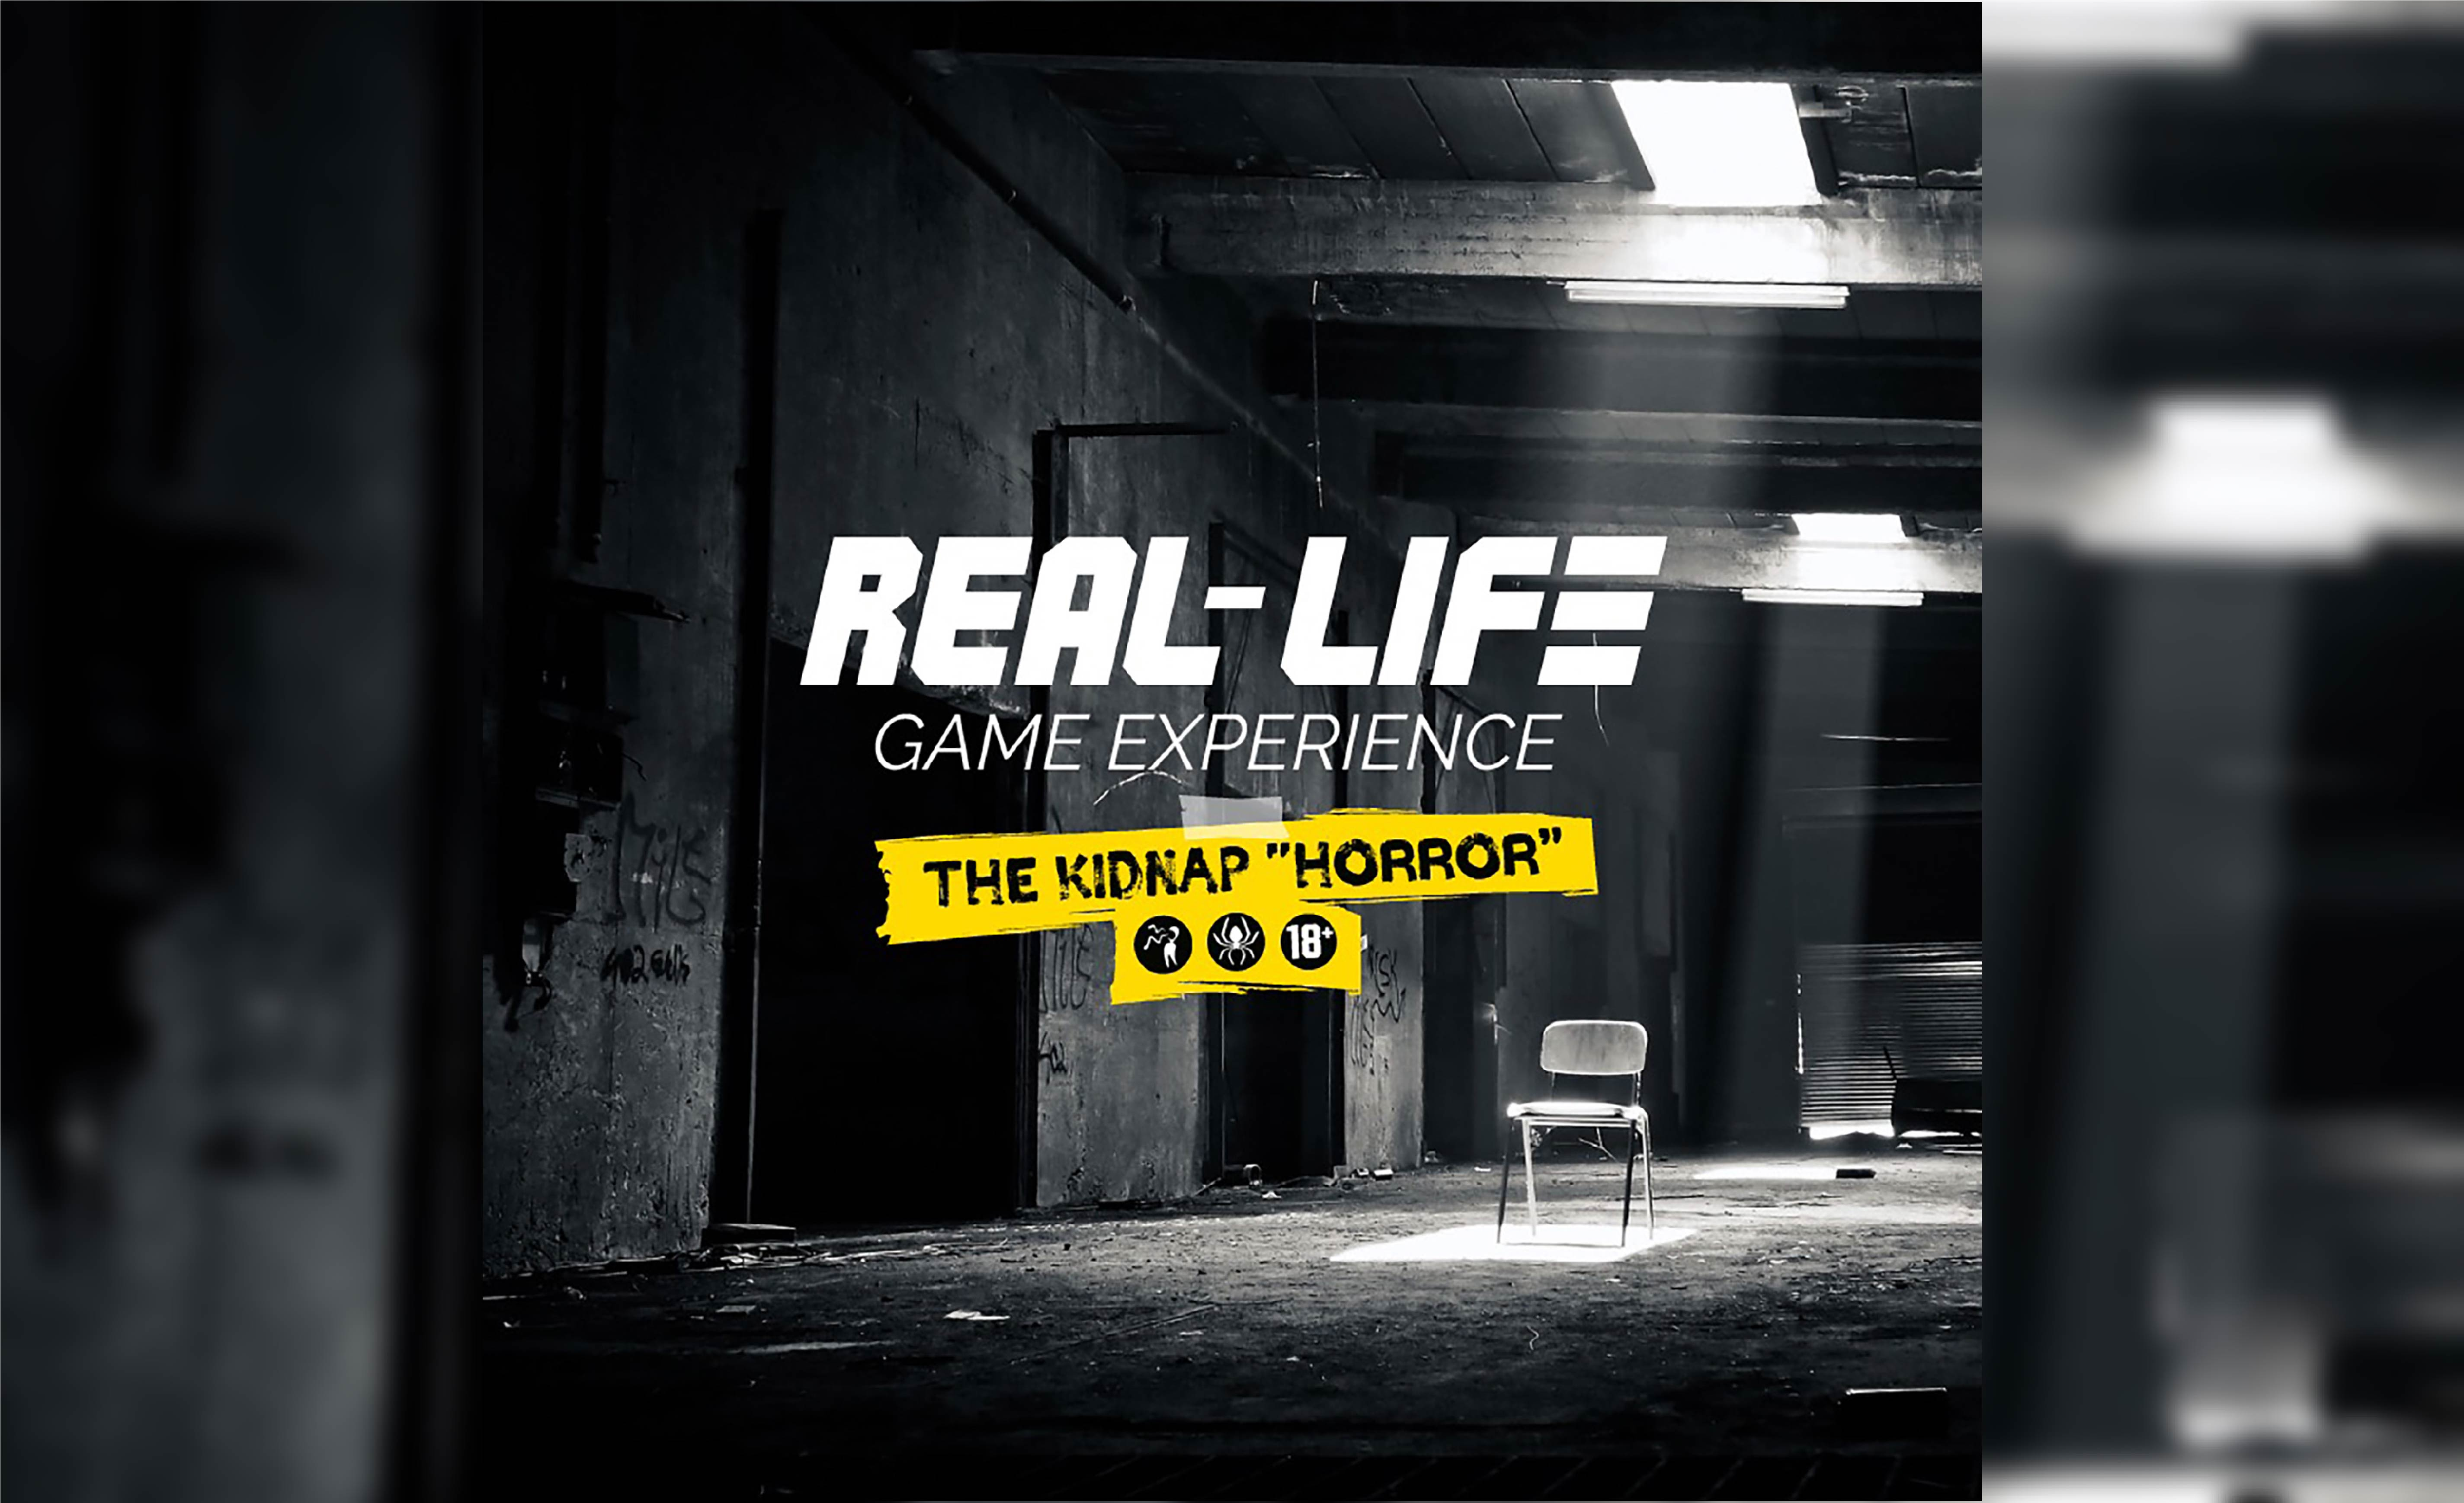 Real-Life Game: The Kidnap